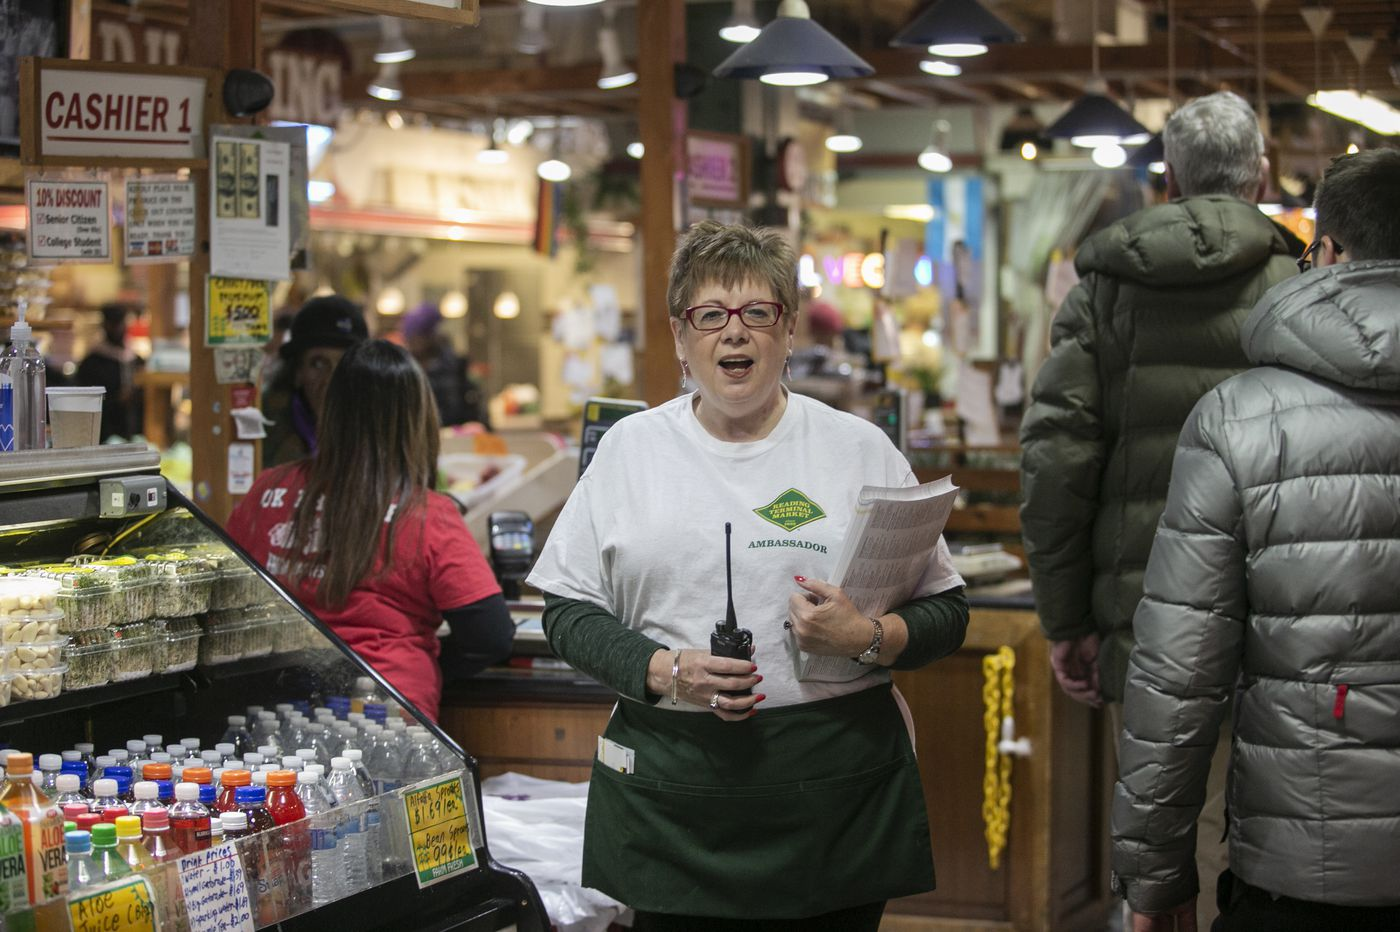 Meet the friendly dynamos who are 'ambassadors' for Philly's Reading Terminal Market